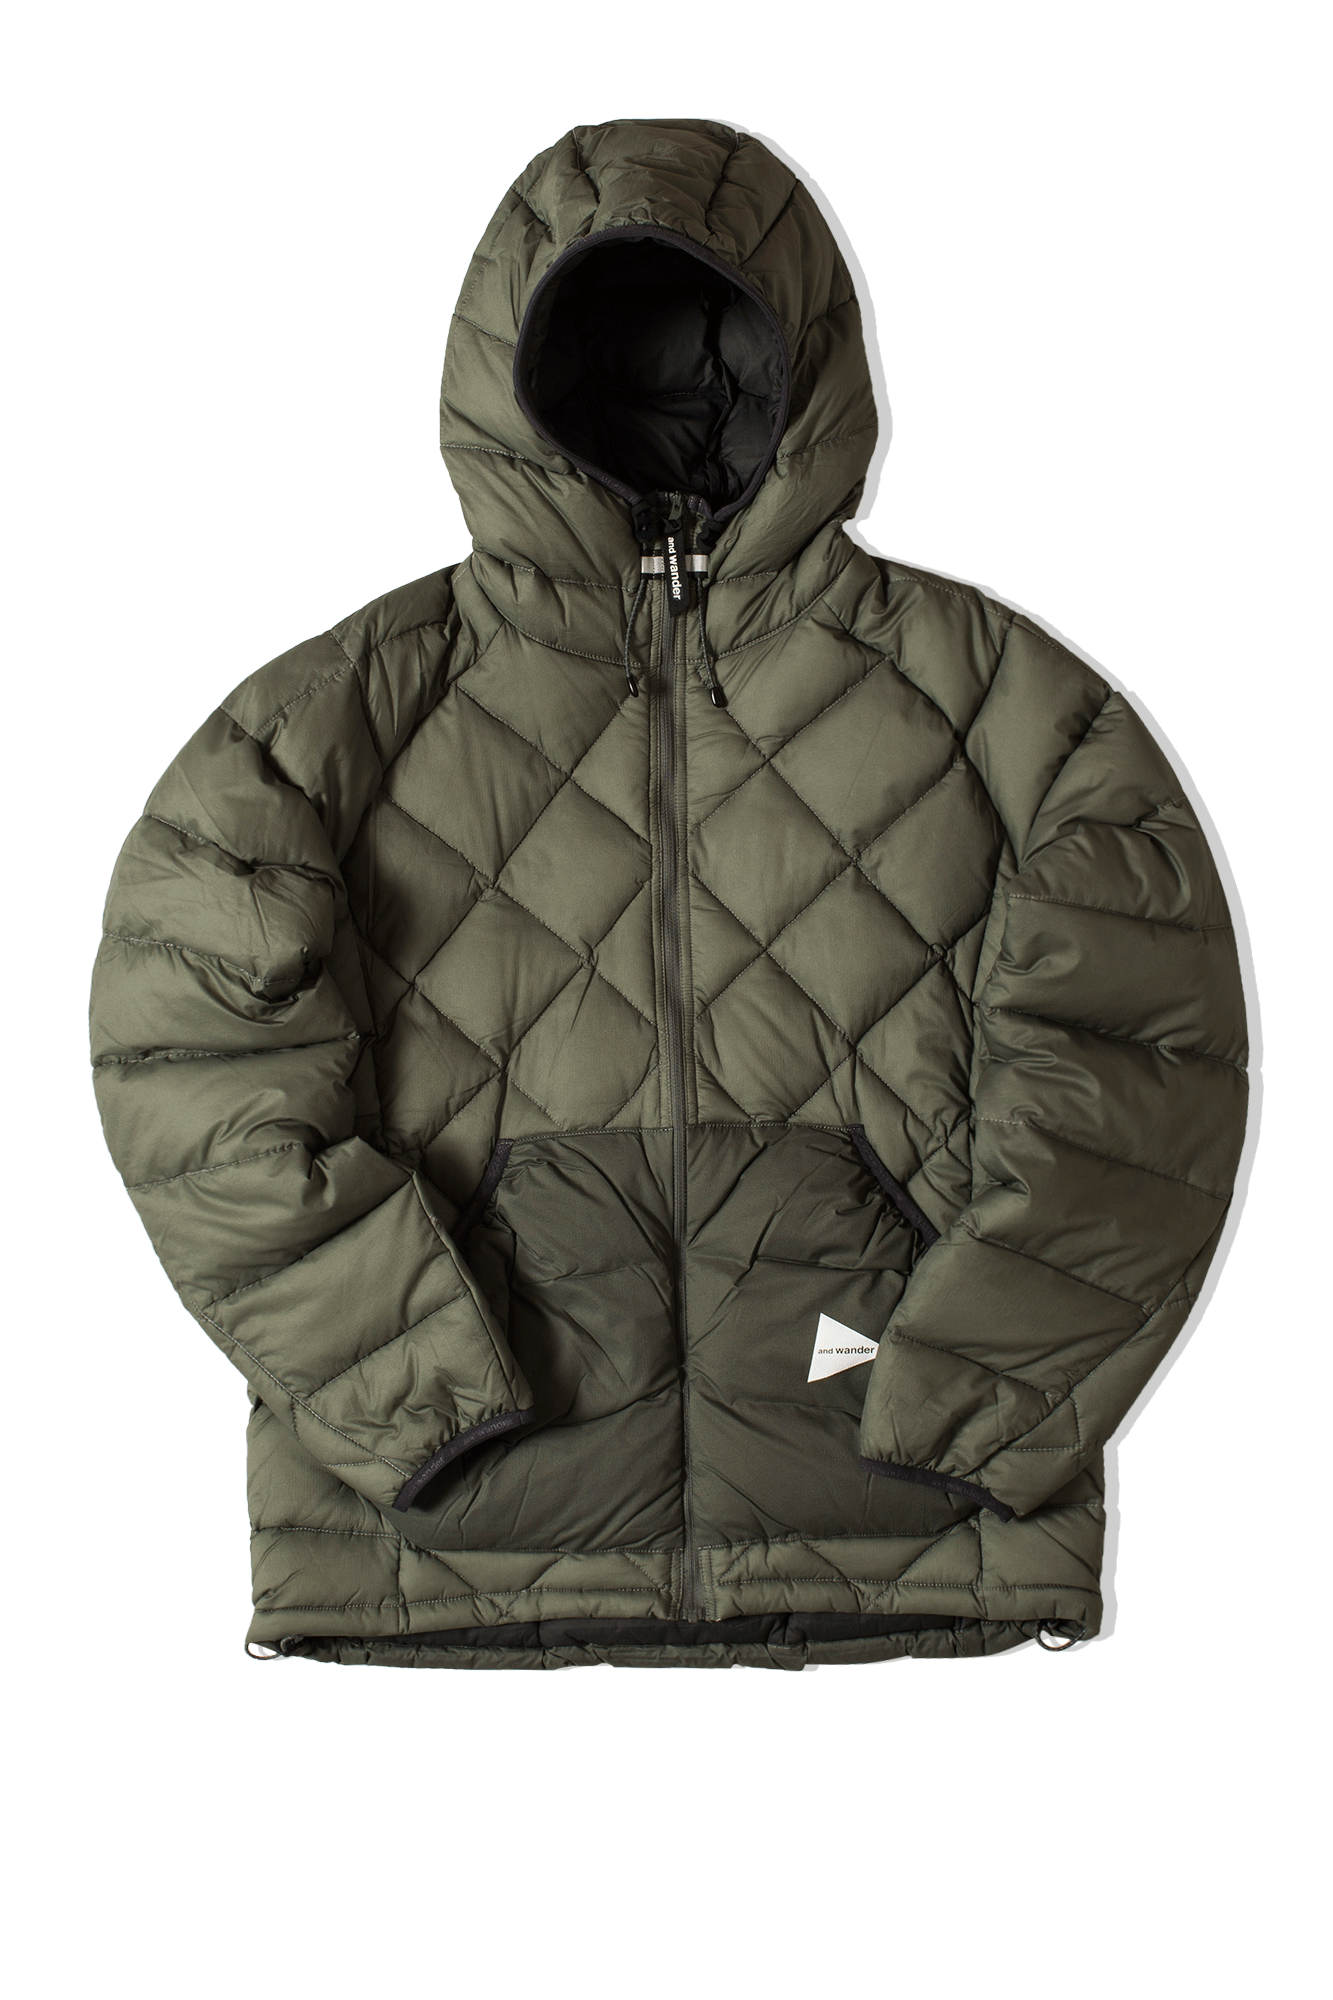 Diamond Stitch Down Jacket Grigio